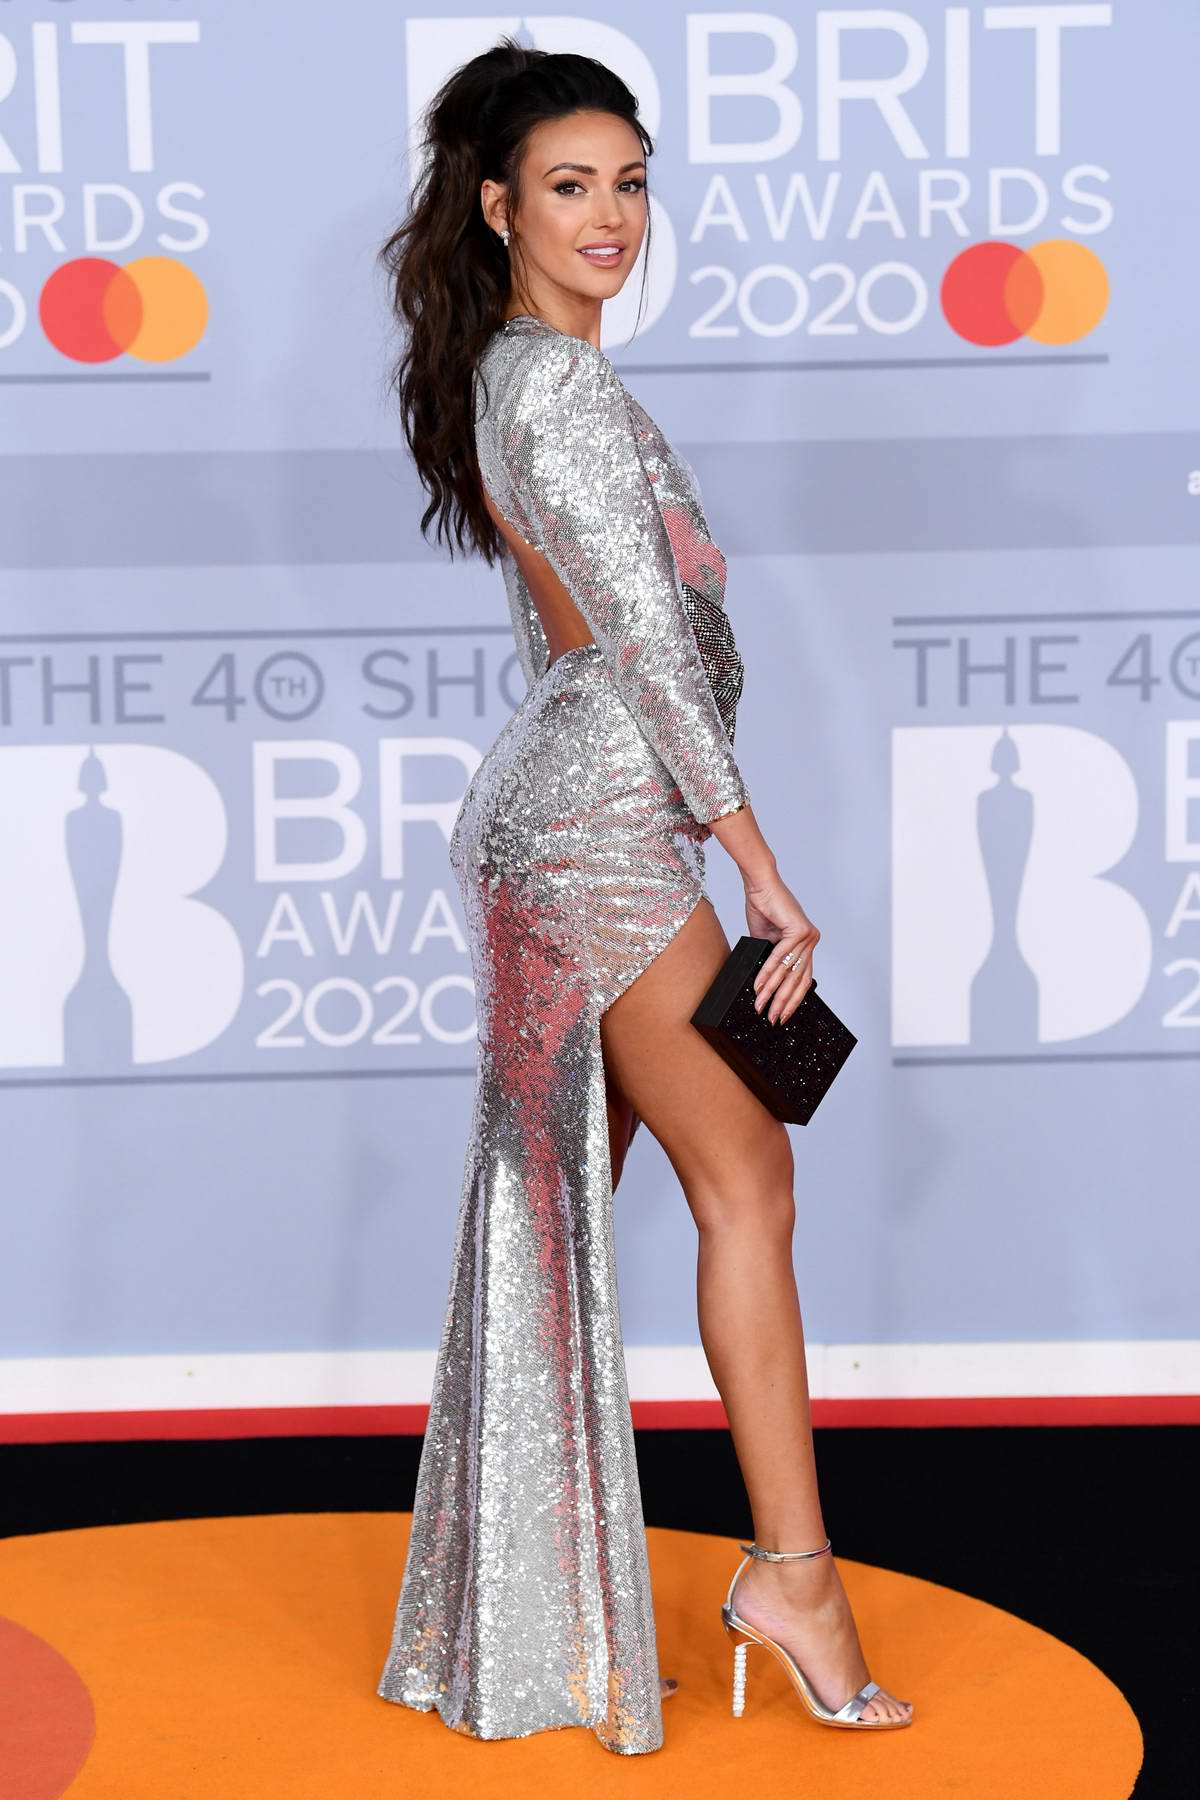 Michelle Keegan attends the BRIT Awards 2020 at The O2 Arena in London, UK